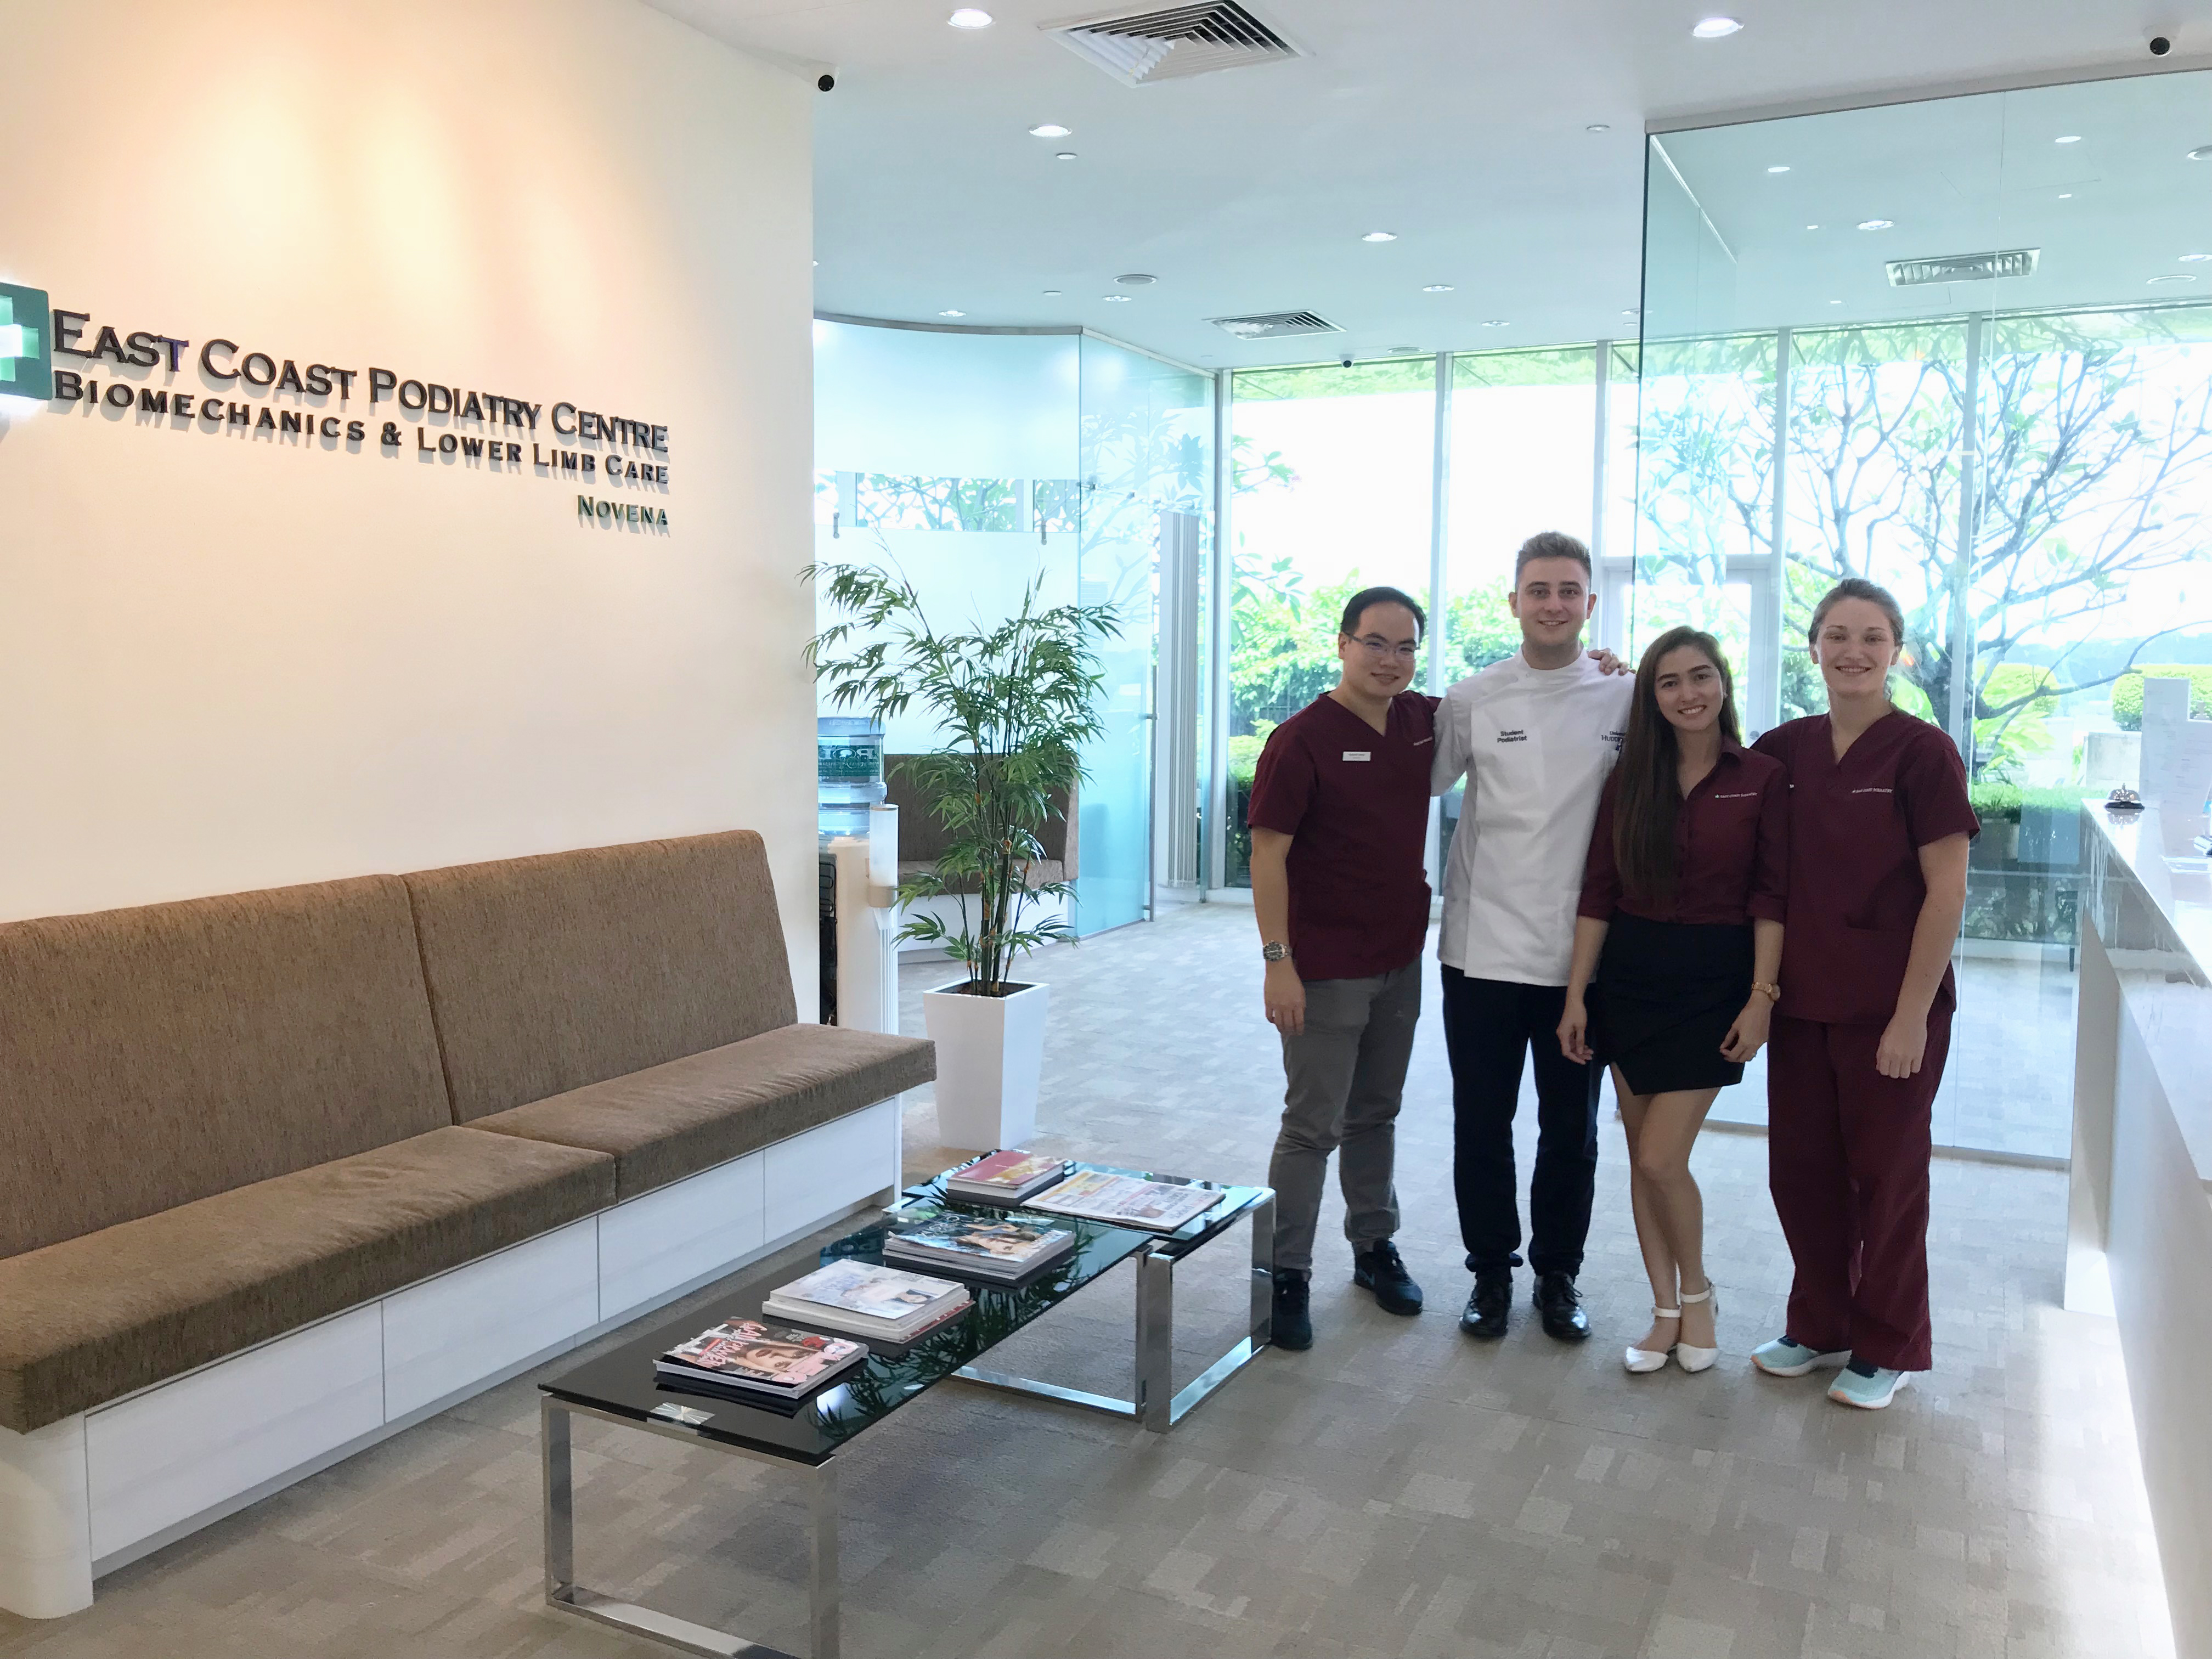 Lewis with Podiatrist Team at Novena | East Coast Podiatry